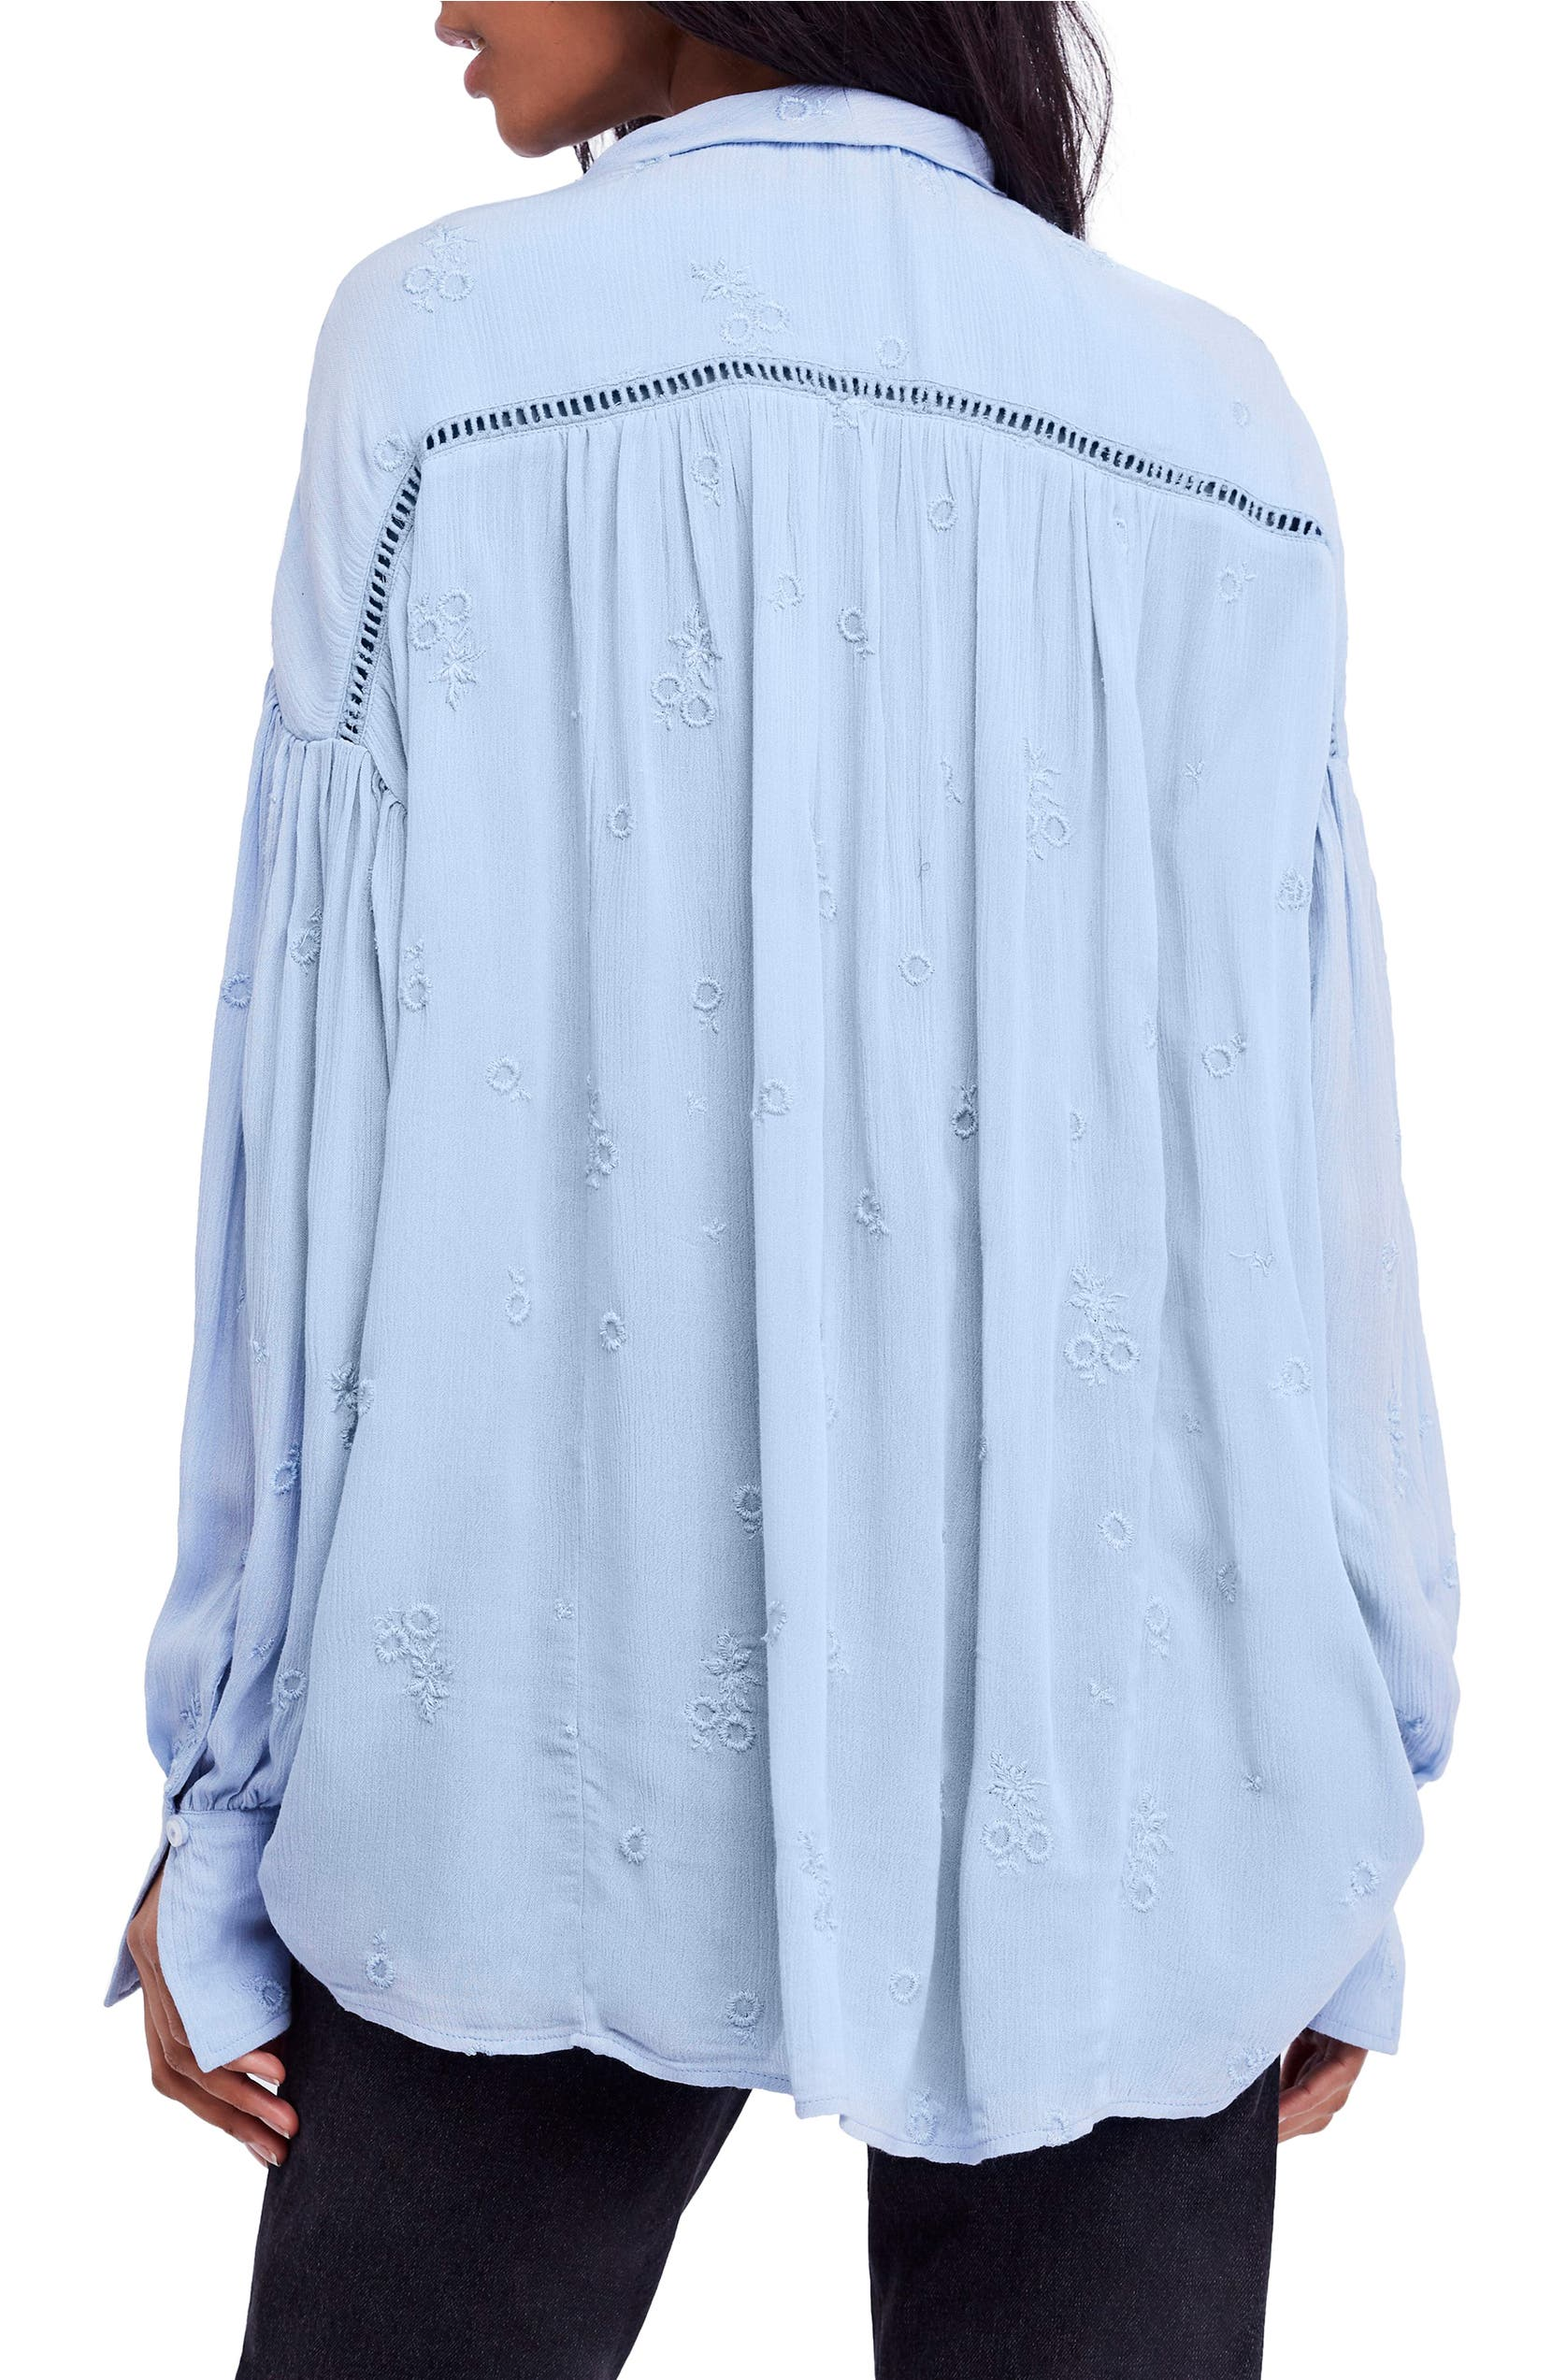 d44bbb4b328d58 Free People Wishful Moments Tie Neck Top   Nordstrom